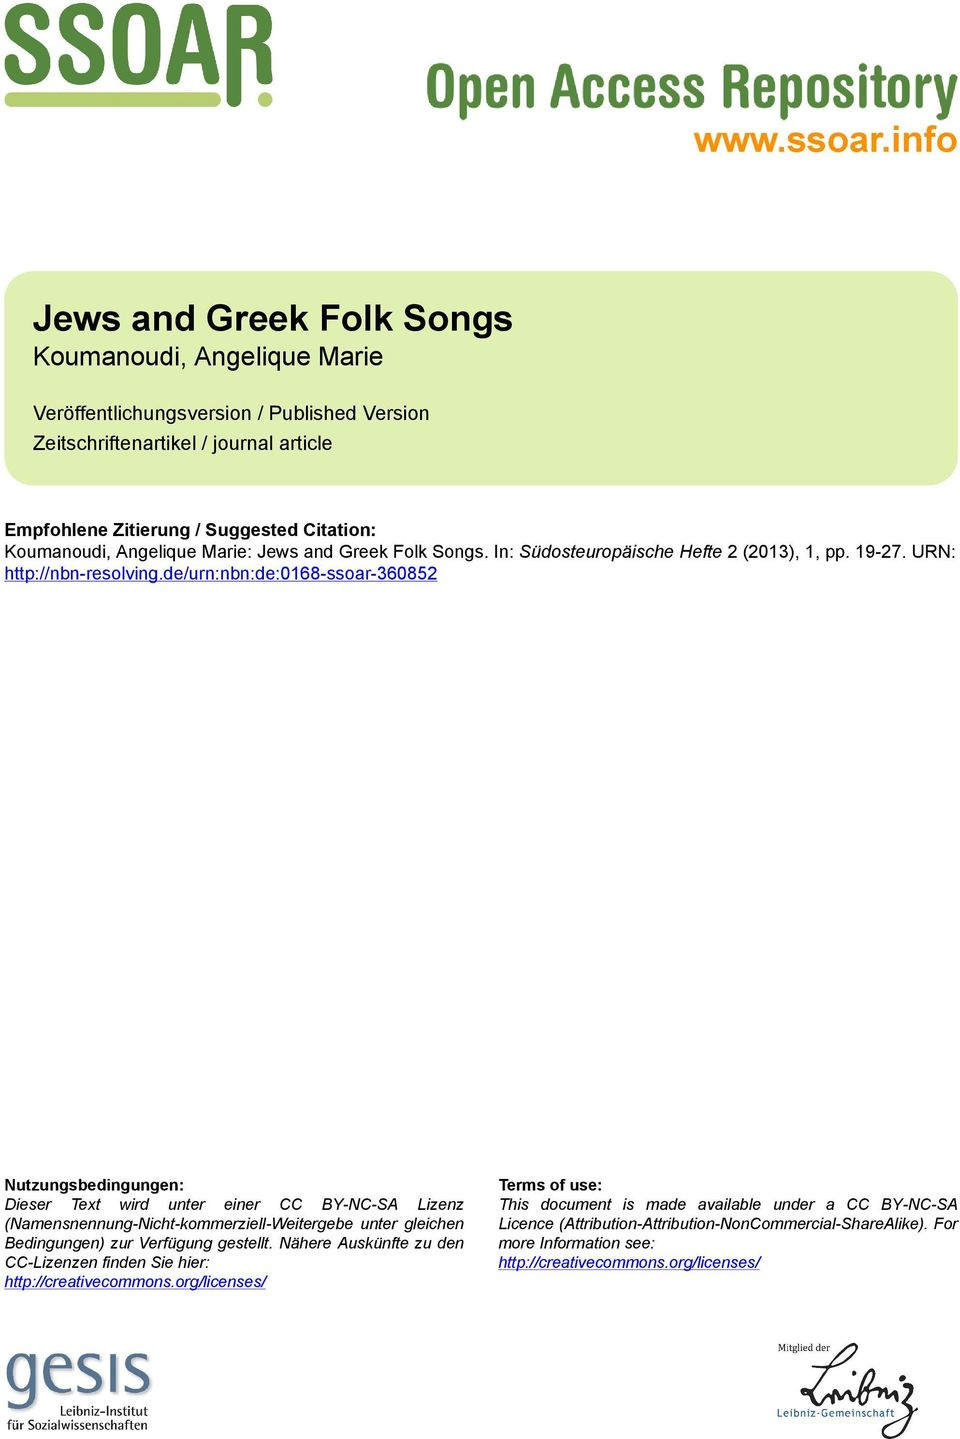 Angelique Marie: Jews and Greek Folk Songs. In: Südosteuropäische Hefte 2 (2013), 1, pp. 19-27. URN: http://nbn-resolving.